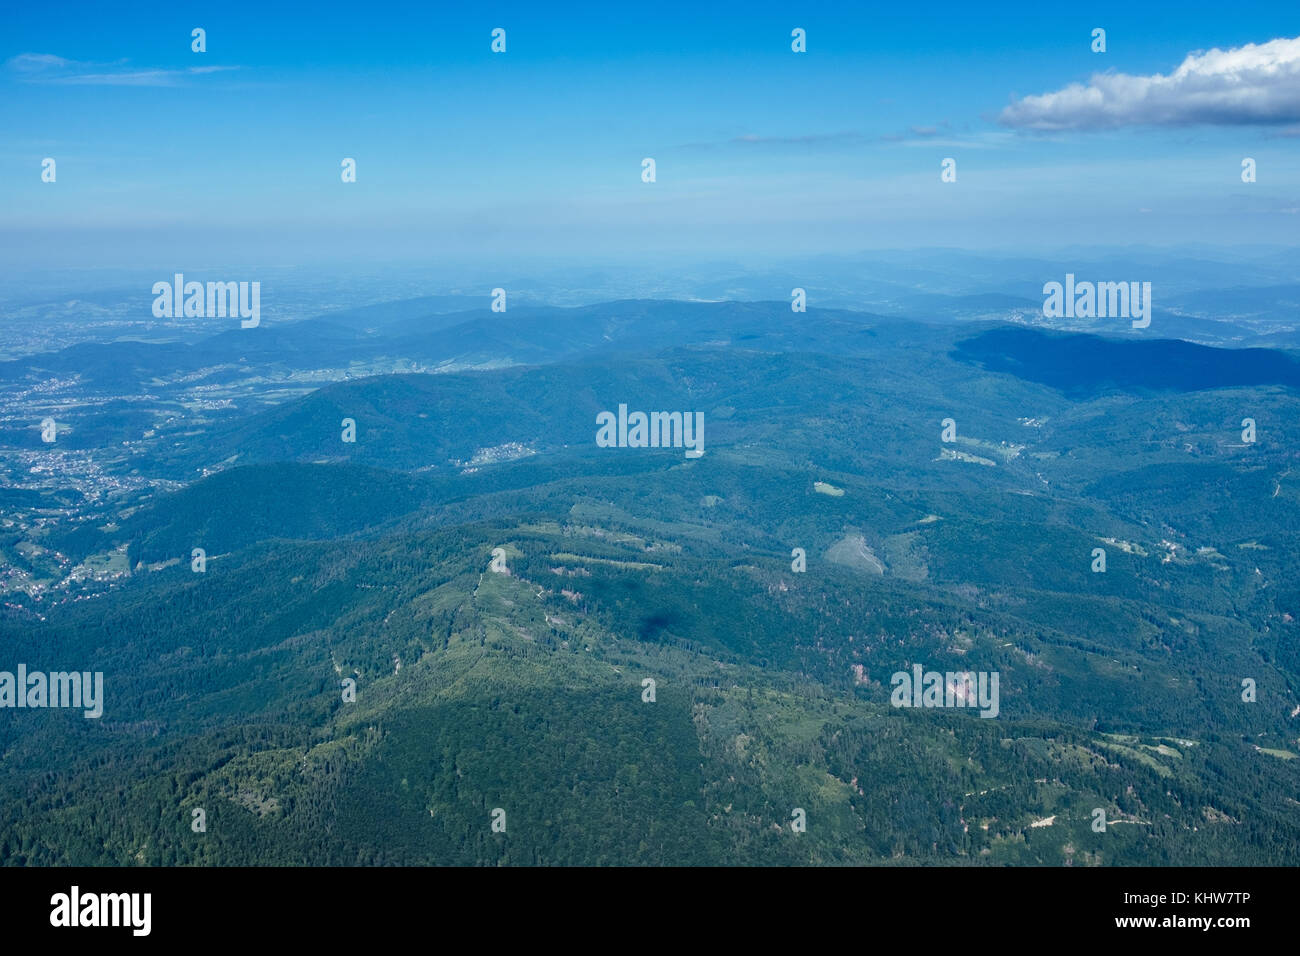 Aerial view of Beskid Maly mounatins range, Beskidy, Lesser Poland, Poland - Stock Image